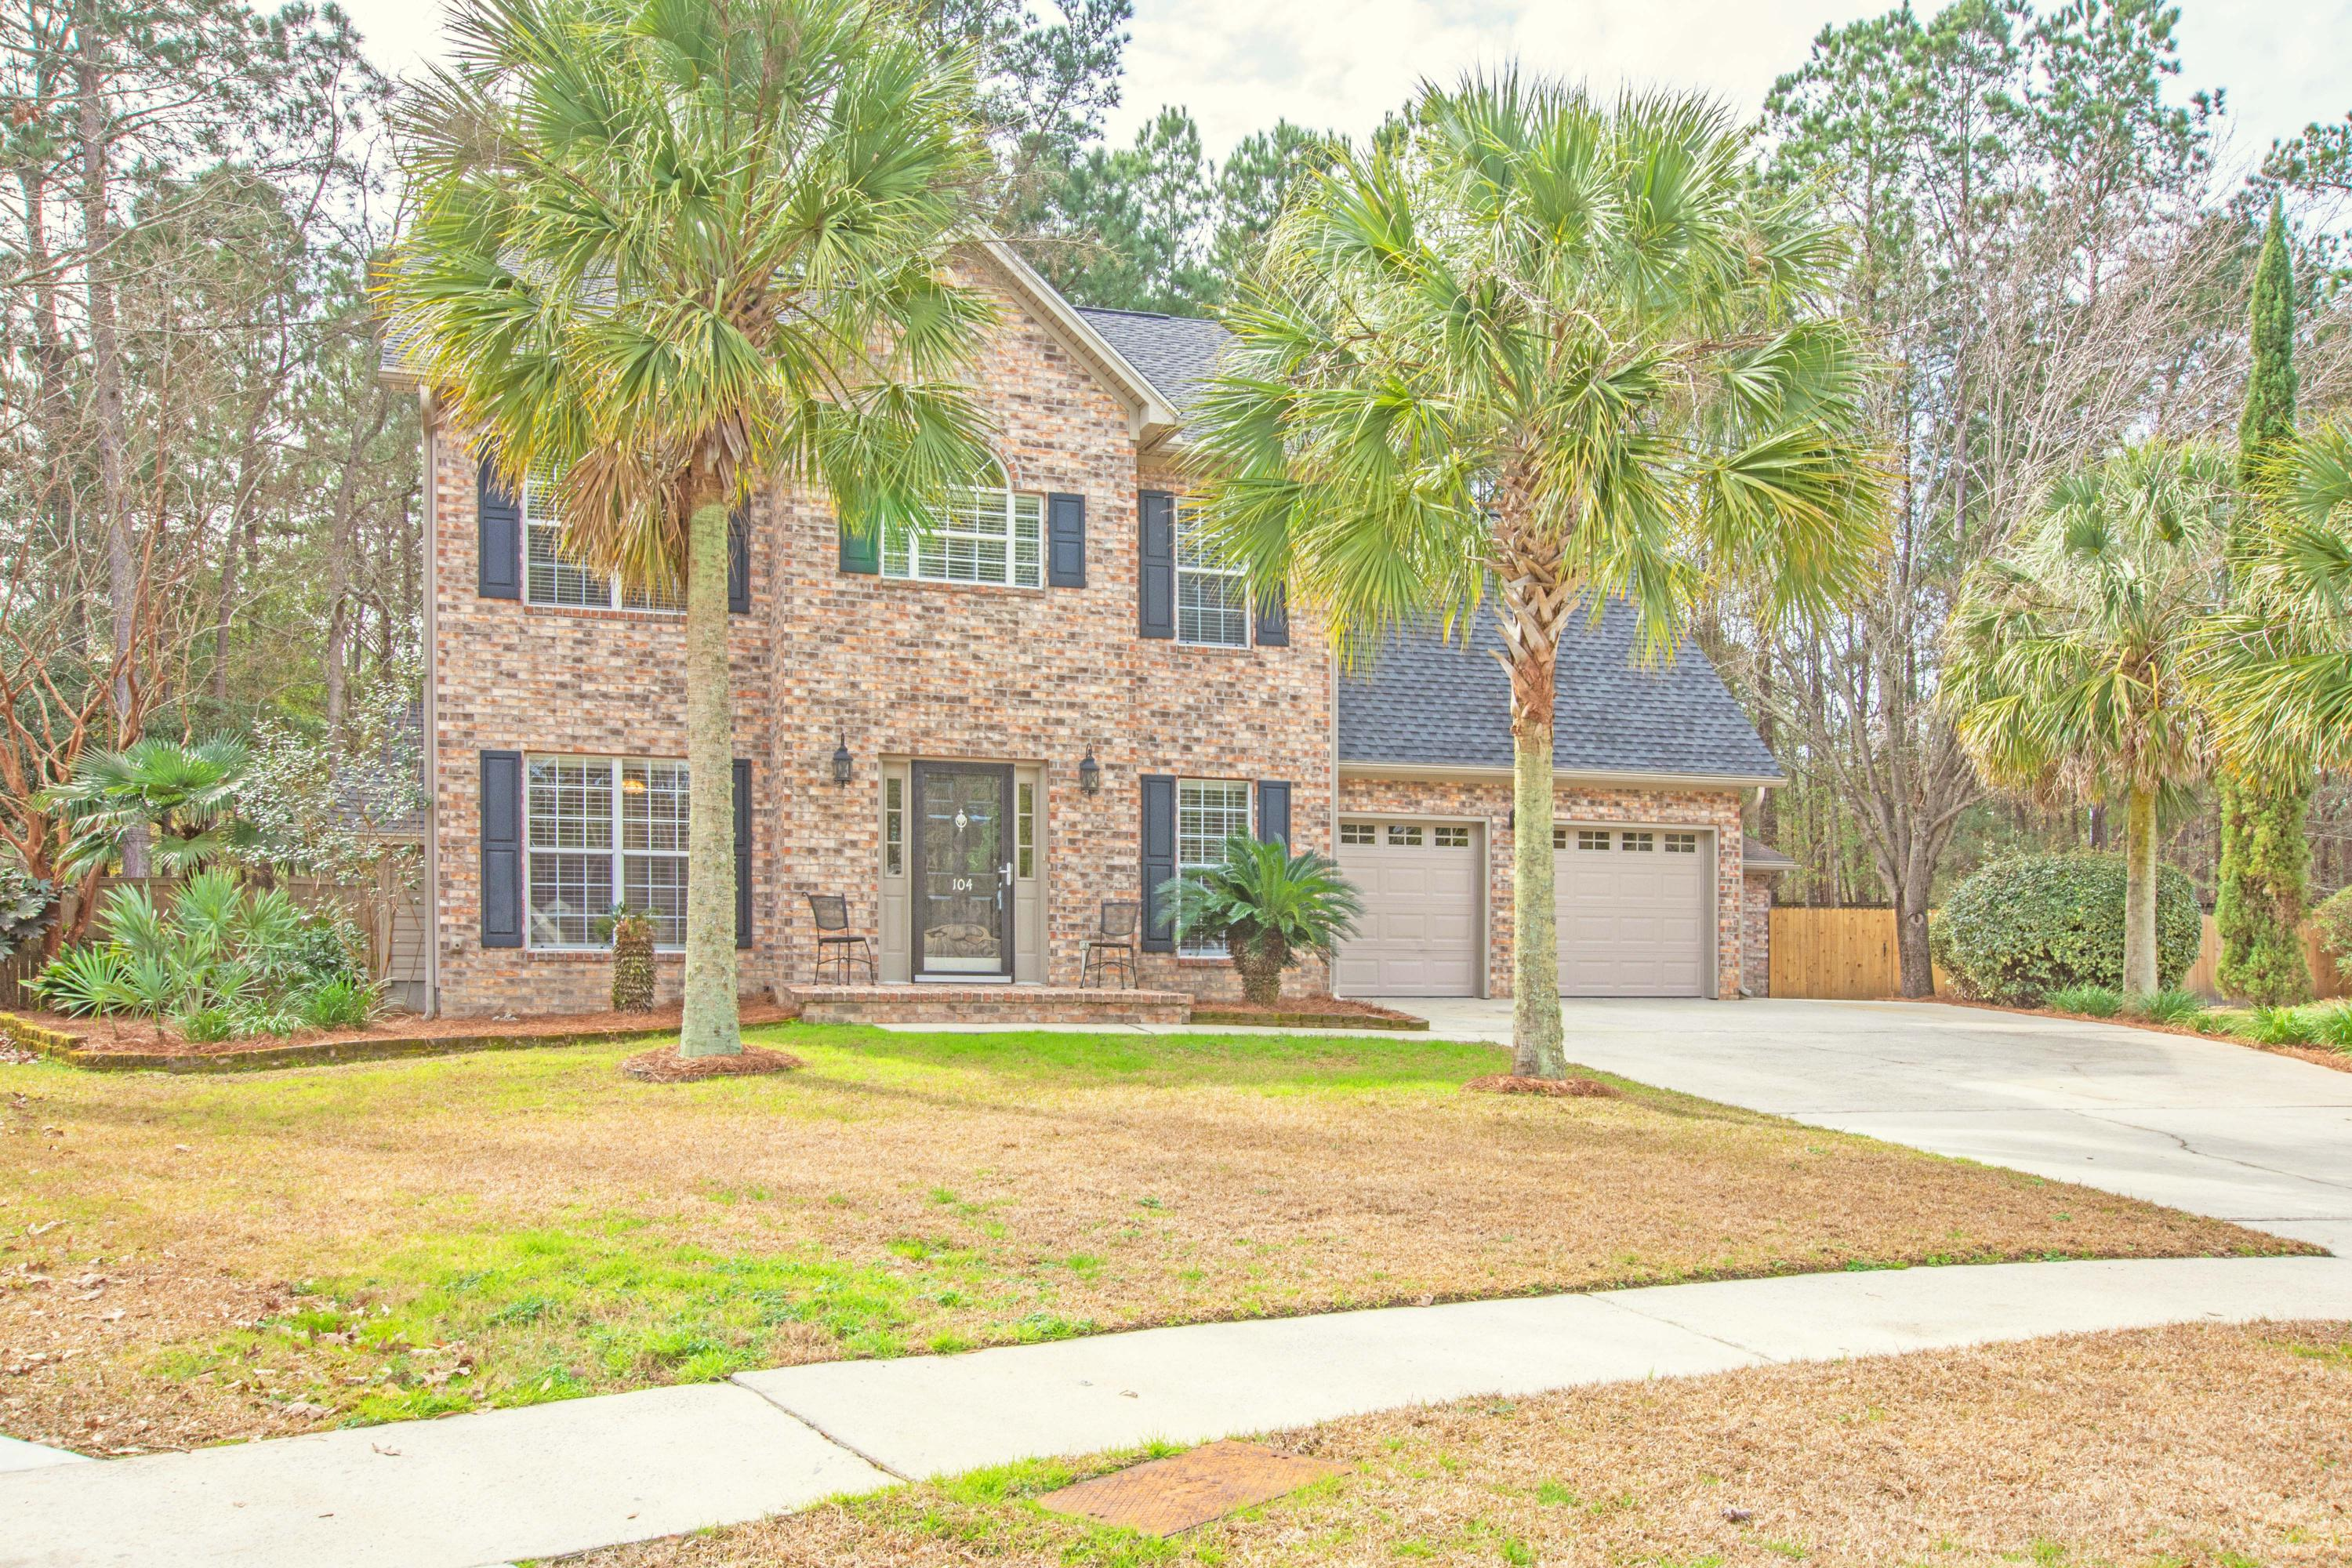 104 S Knightsbridge Court Goose Creek, SC 29445